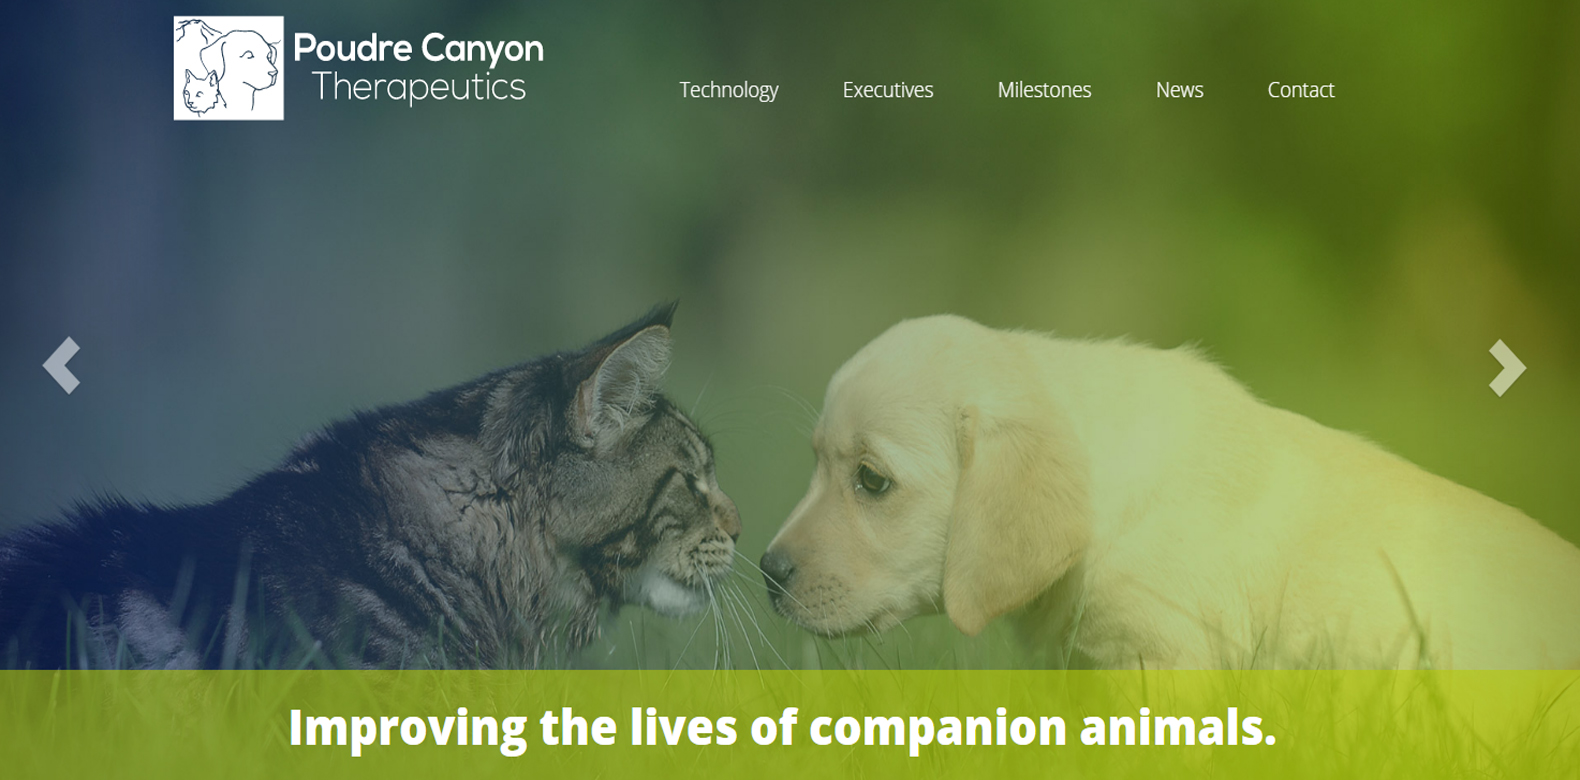 New Website Launched: Poudre Canyon Therapeutics